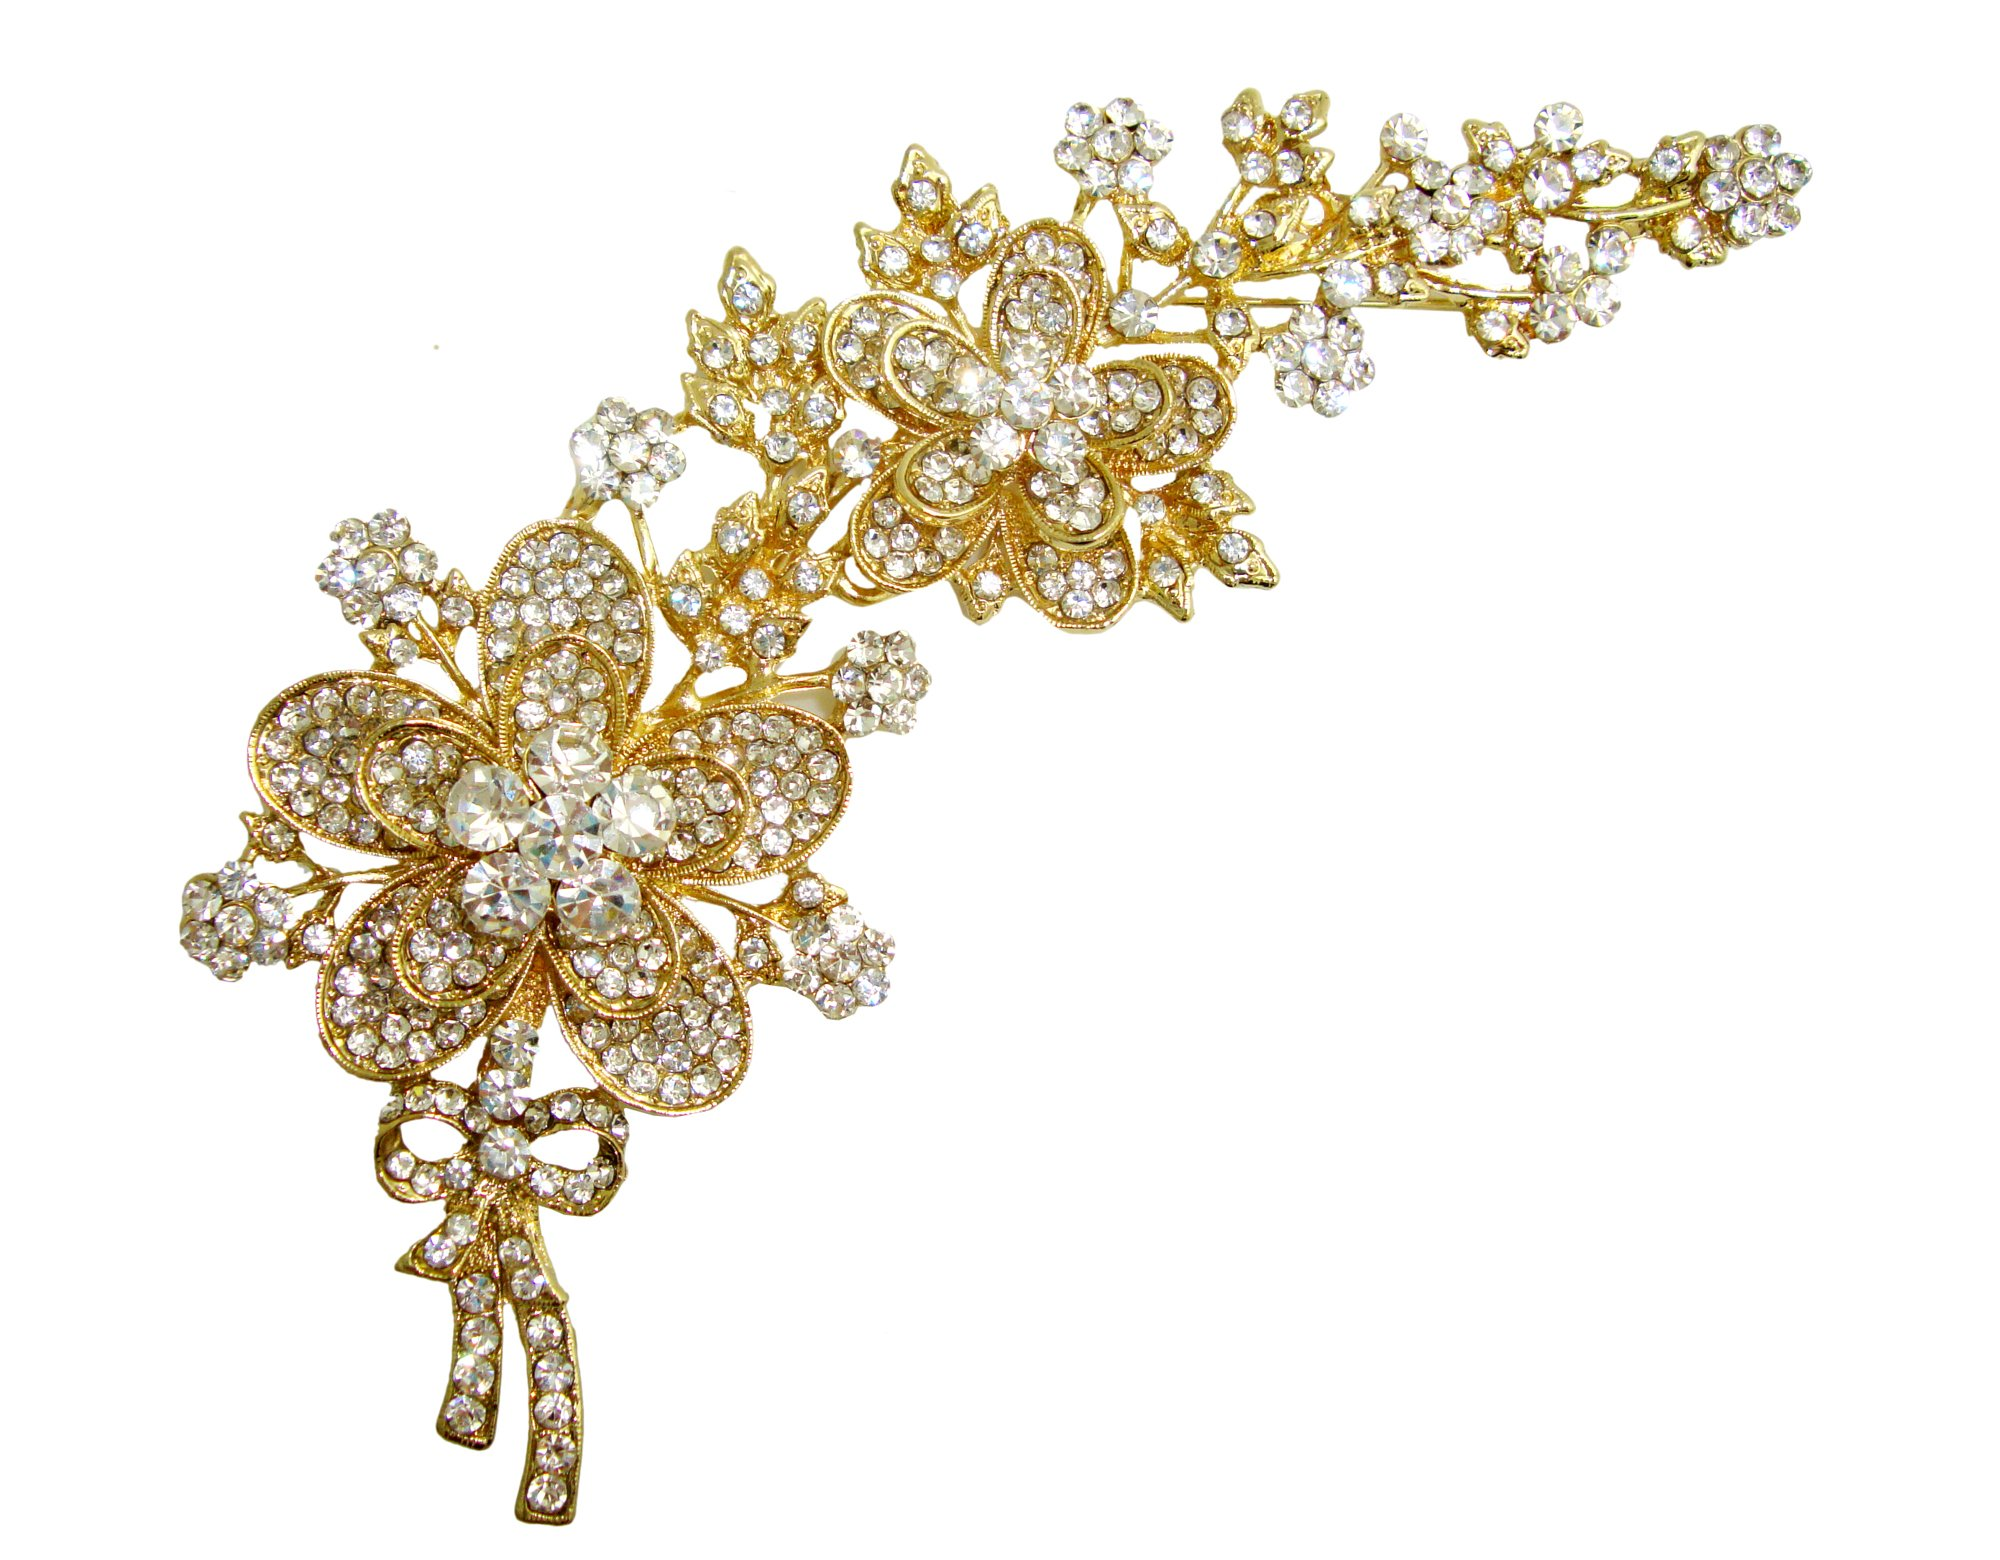 TTjewelry 5.7'' Clear White Gold-tone Petals Bridal Flower Austrian Crystal Brooch Pin Bouquet Jewelry